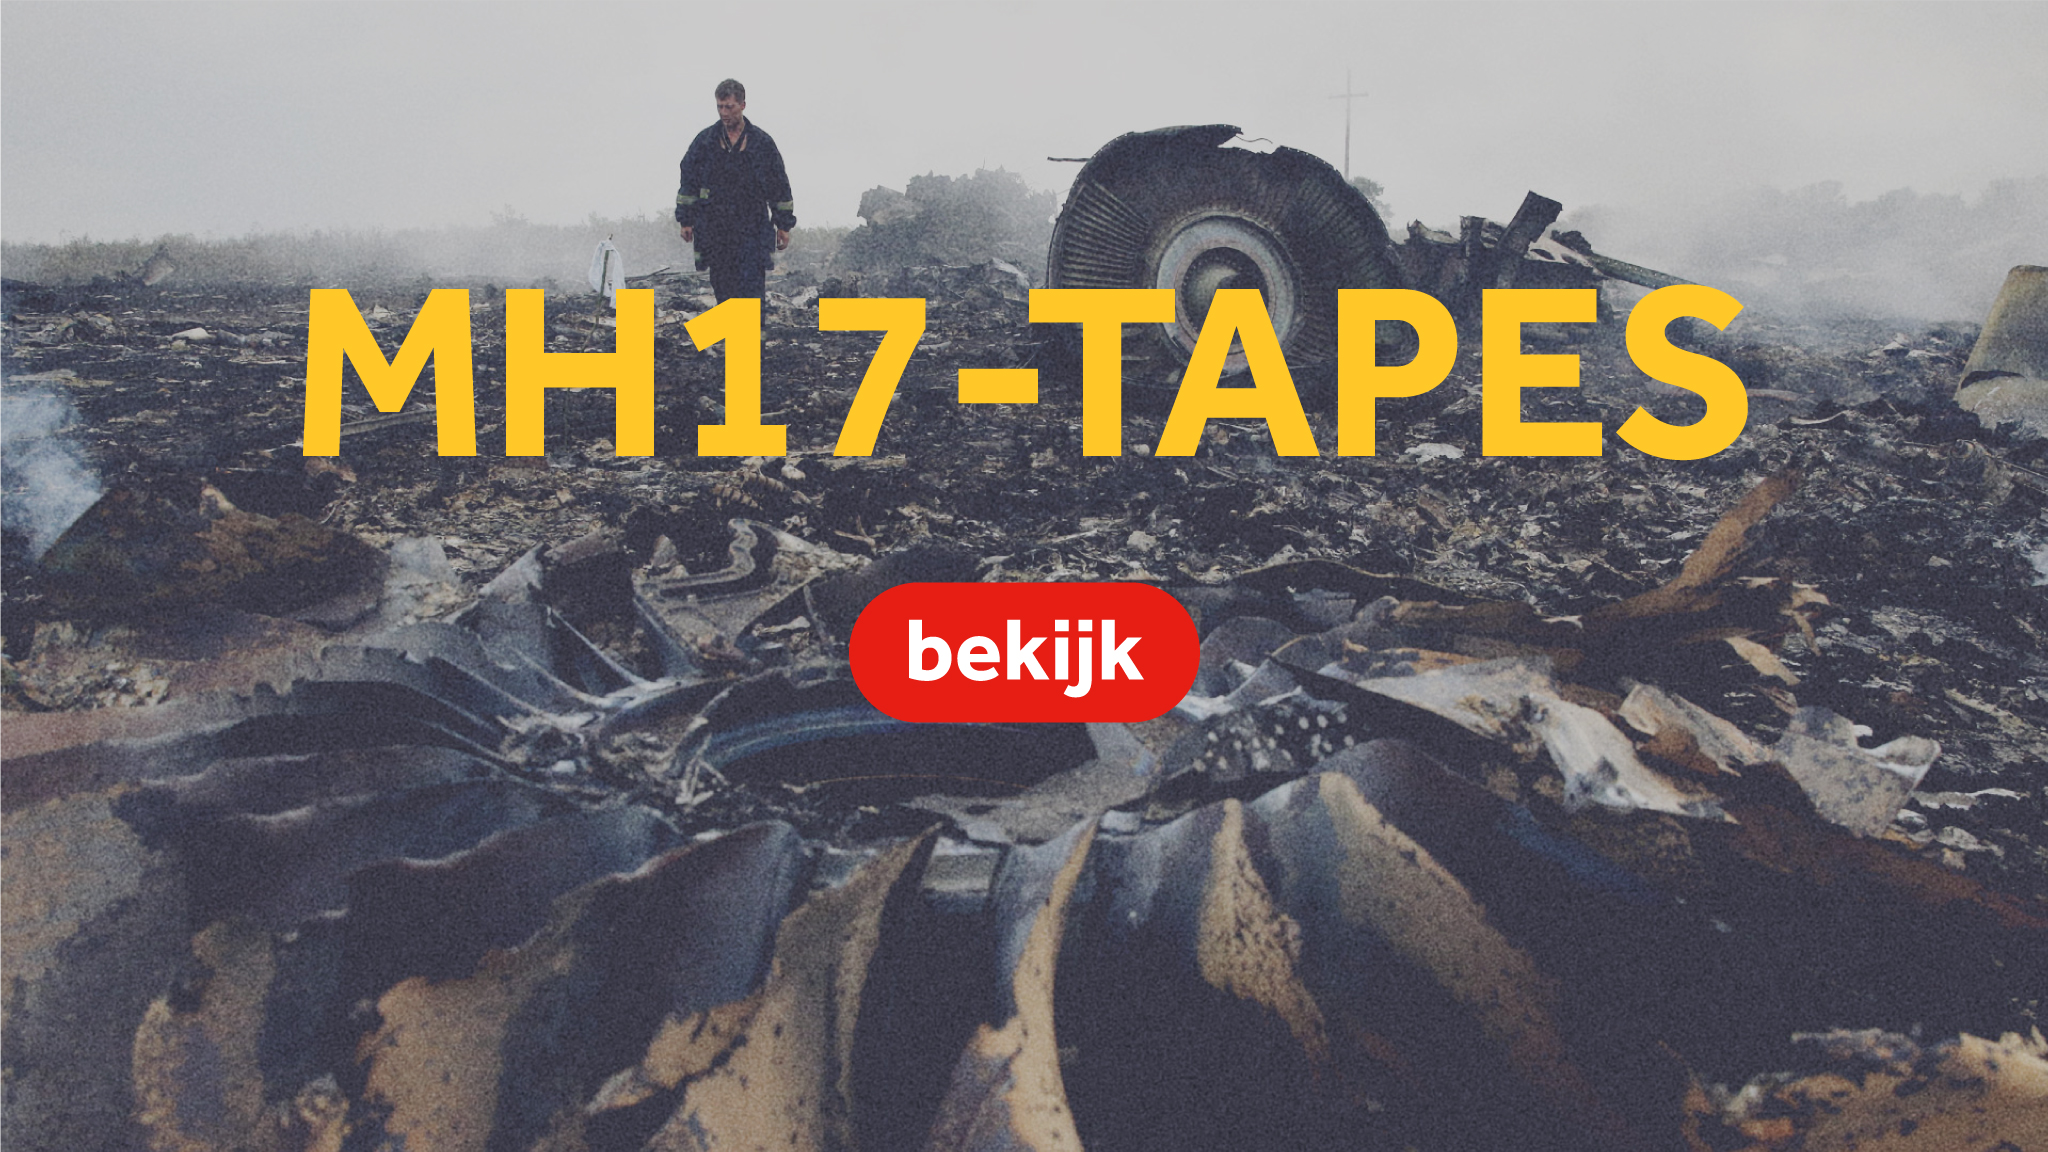 MH17-Tapes | NOS op 3